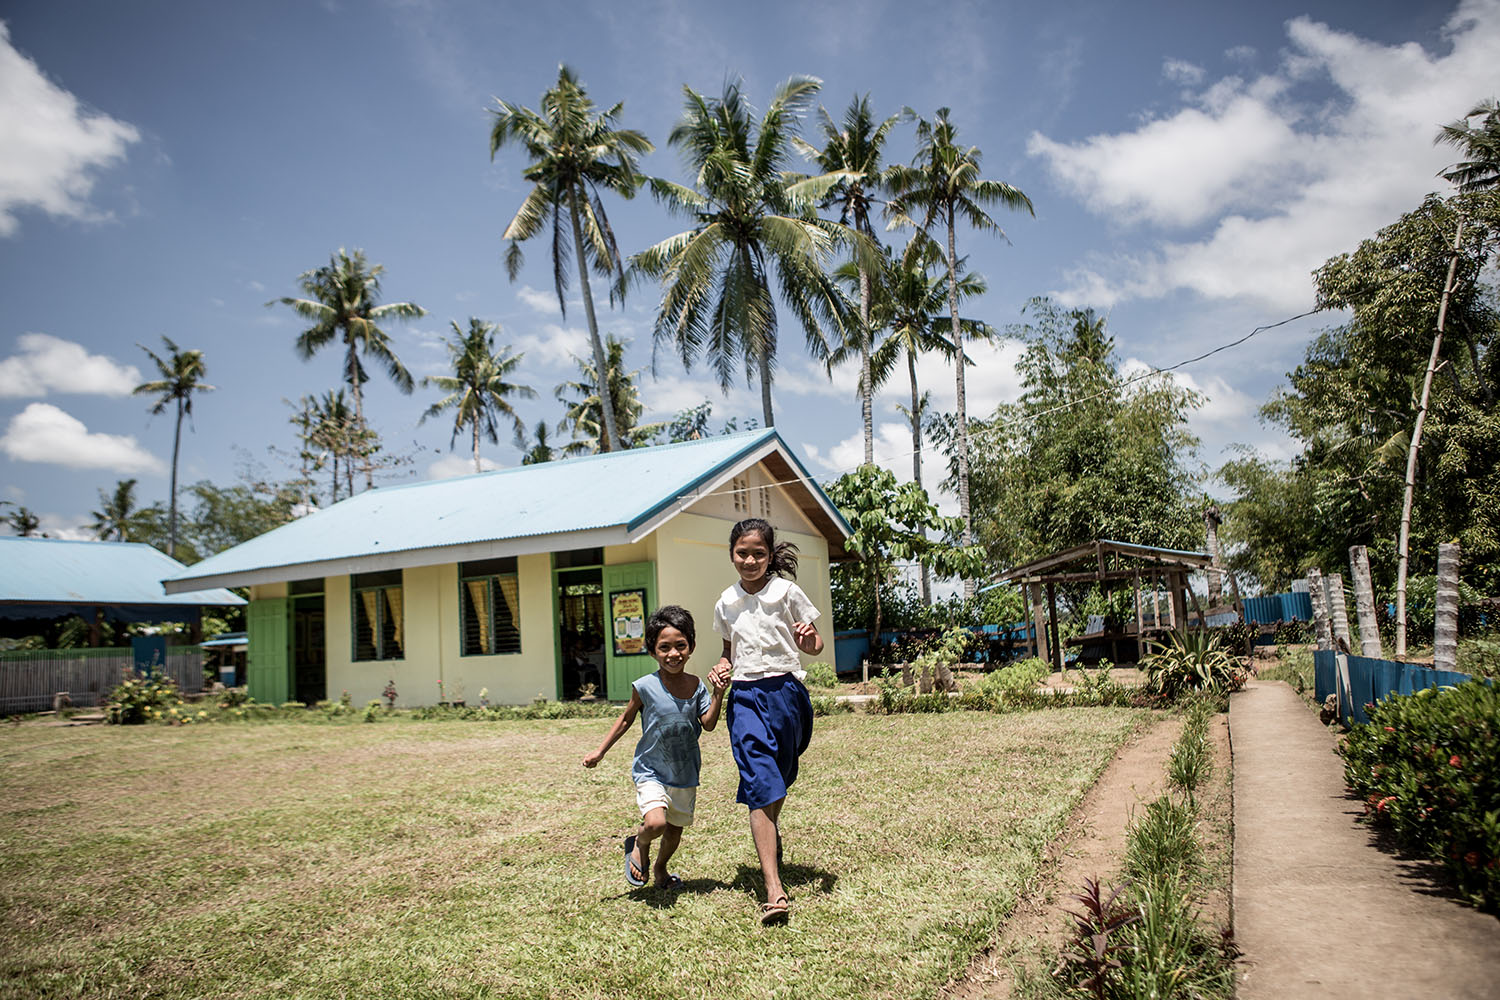 Maria Lourdes Tolibas (Inchang)  and her brother Francisco Tolibas Maghulod Elementary School, Leyte UNICEF trip to Tacloban, in the Philipines to report on their response to Typhoon Yolanda, March 2016